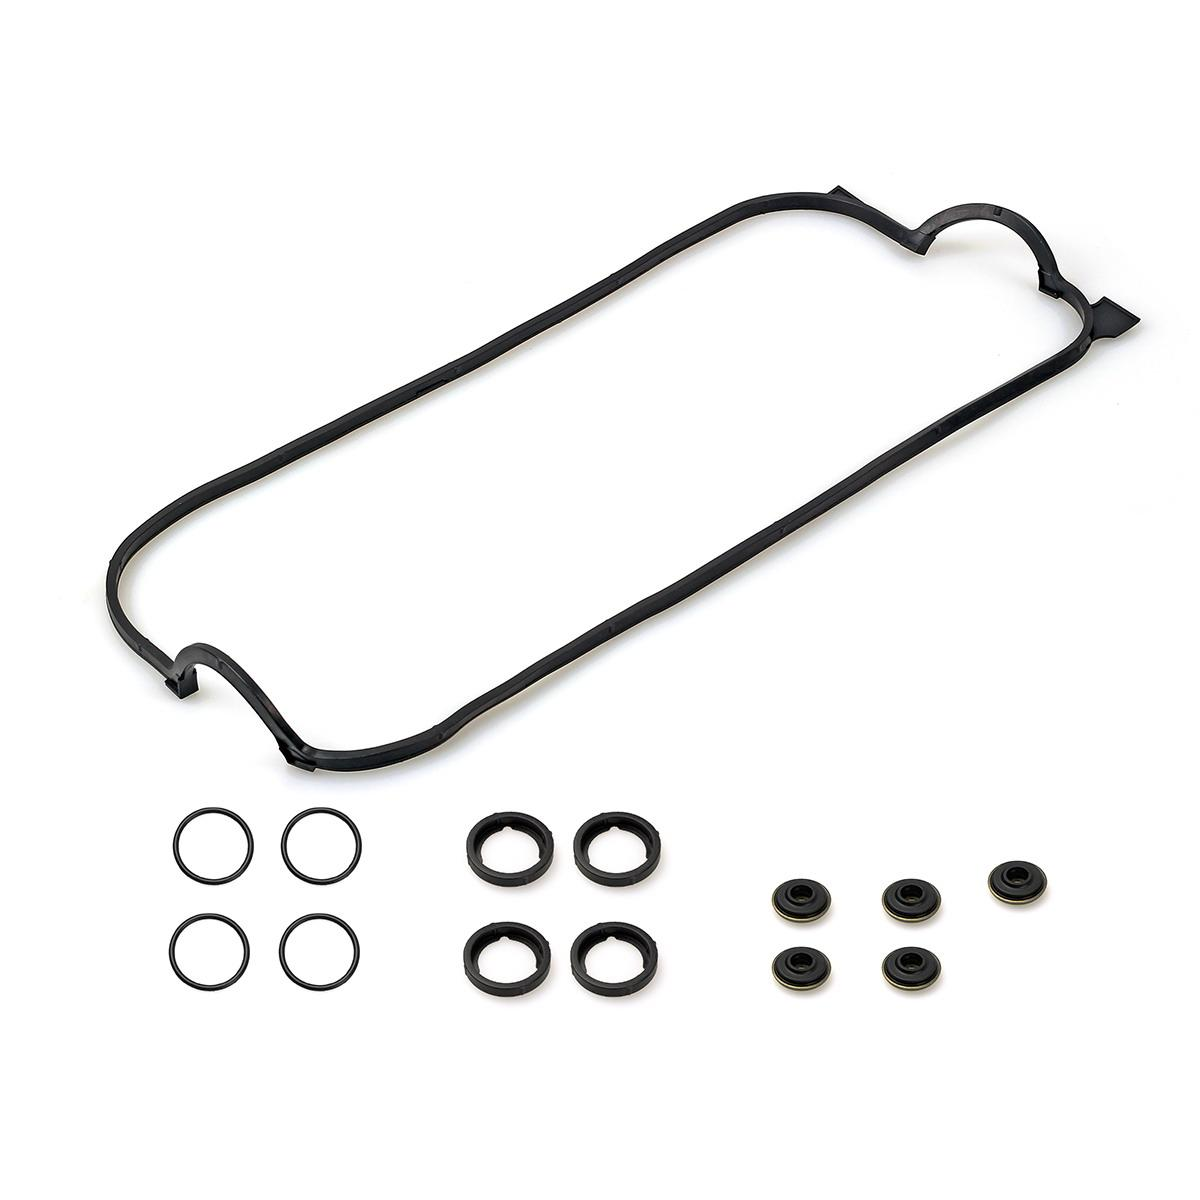 Valve Cover Gasket Fits 1990-1998 Honda Accord Prelude